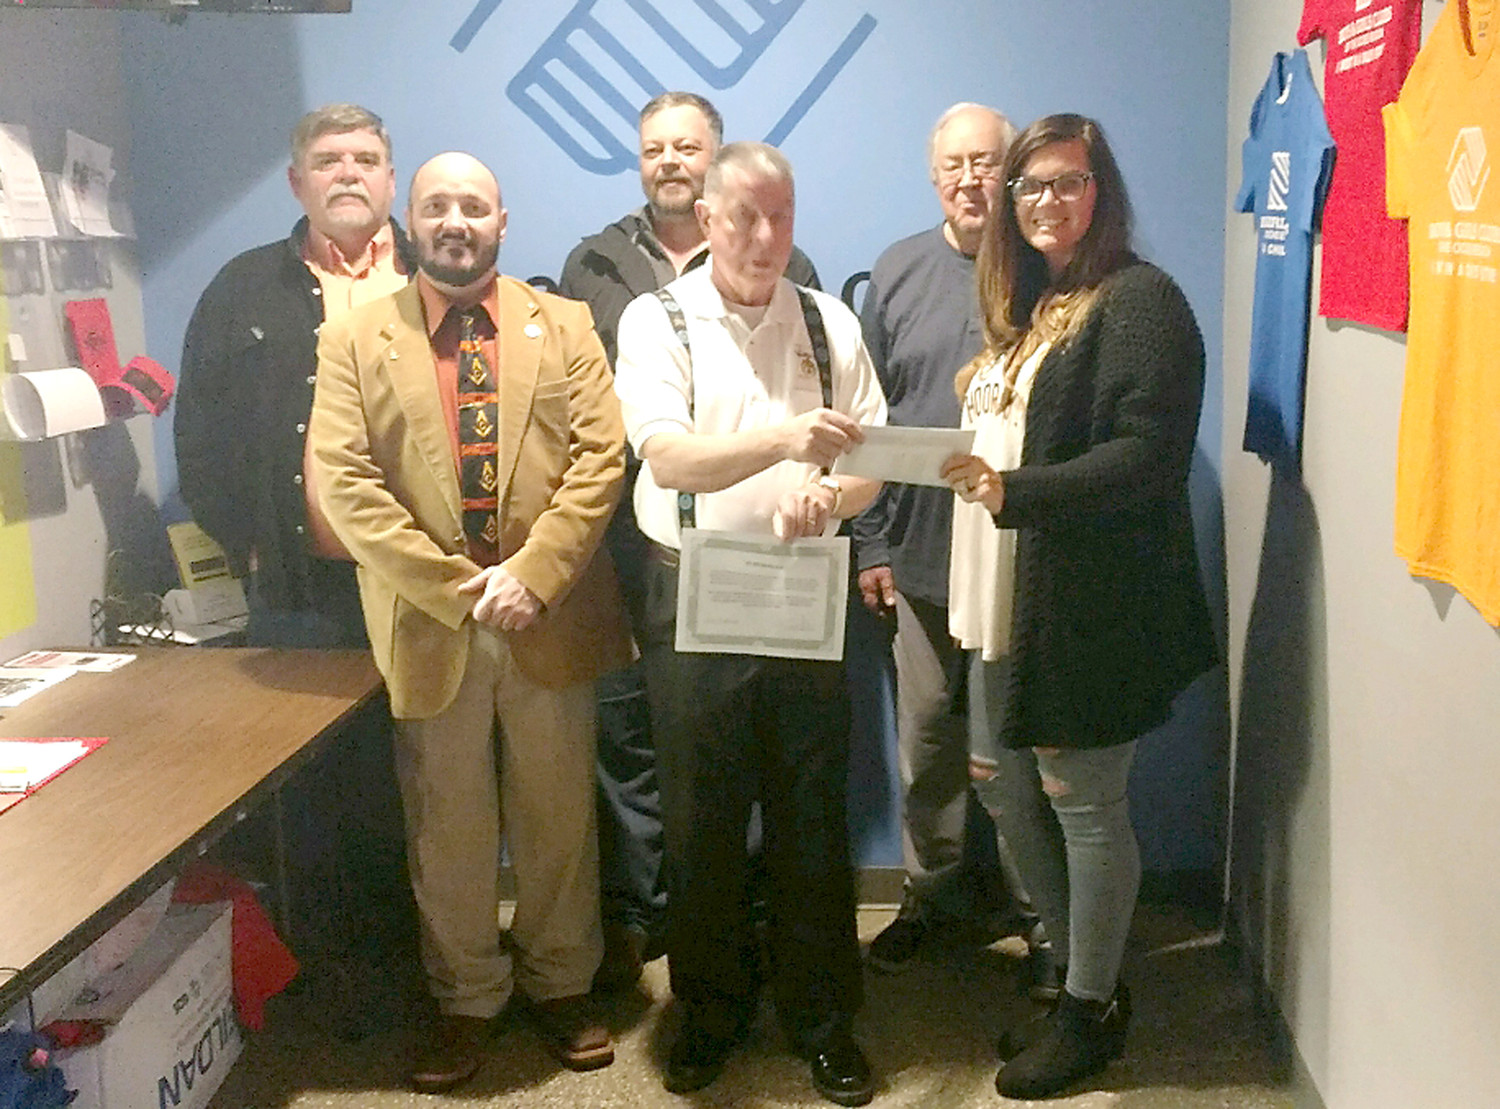 Recently Conasauga Lodge No. 396 F.& A.M. made a donation to the Ocoee Region Boys & Girls Club Benton Unit, for $1,000 in memory of Riley Burris and Destany Vires, two Polk County youth who were outstanding leaders in their community, professed their faith in Jesus Christ and were taken from their loved ones much too early.